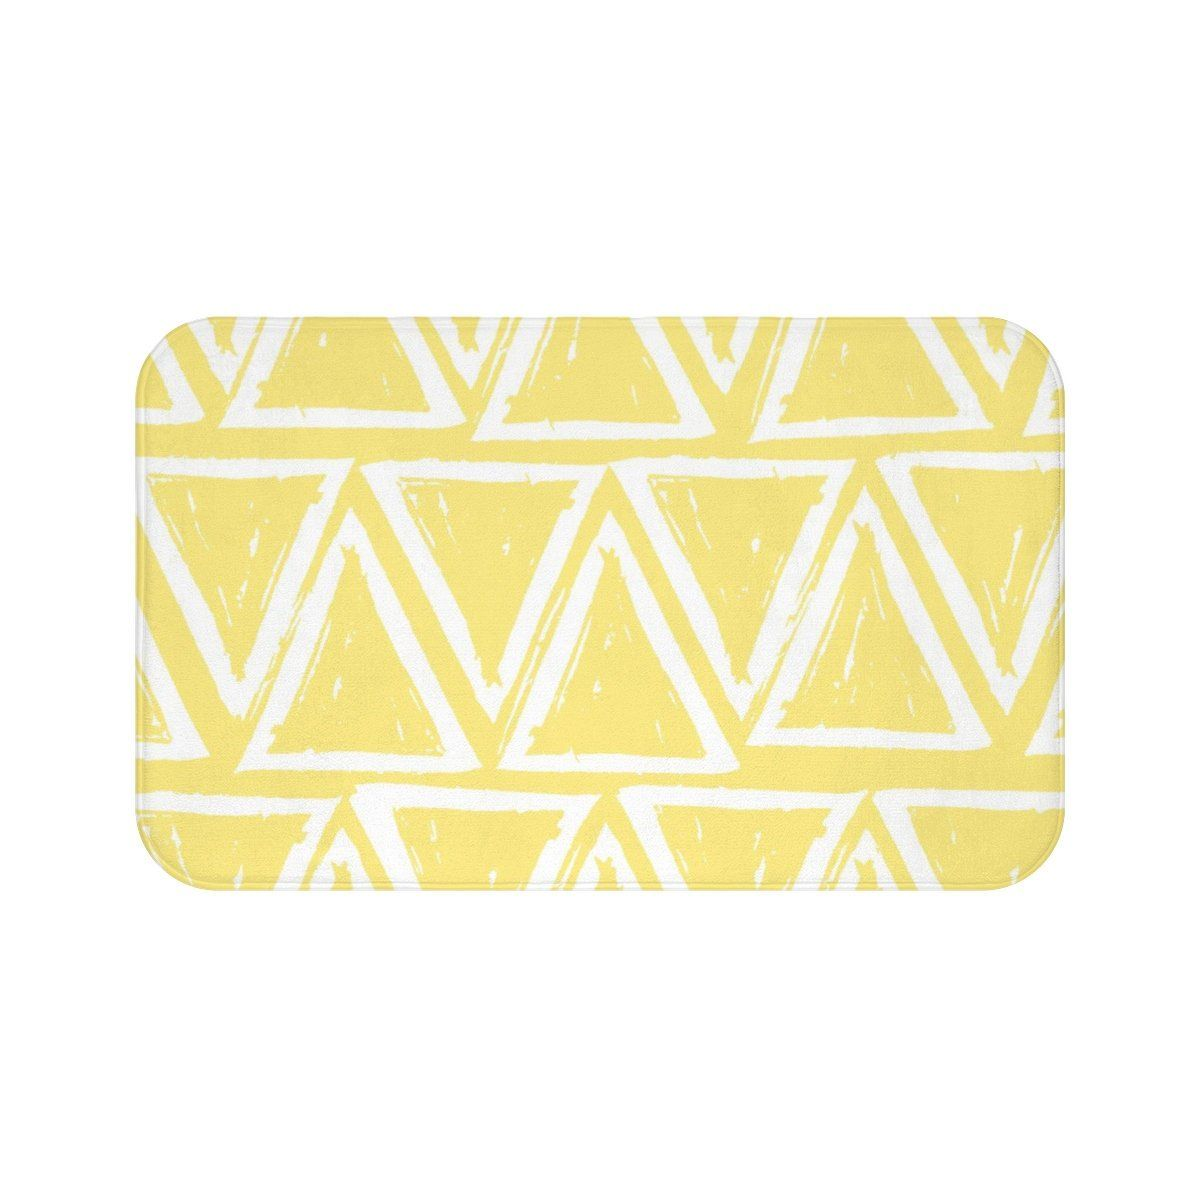 Butter Yellow Bath Mat Yellow And White Bath Mat Triangle